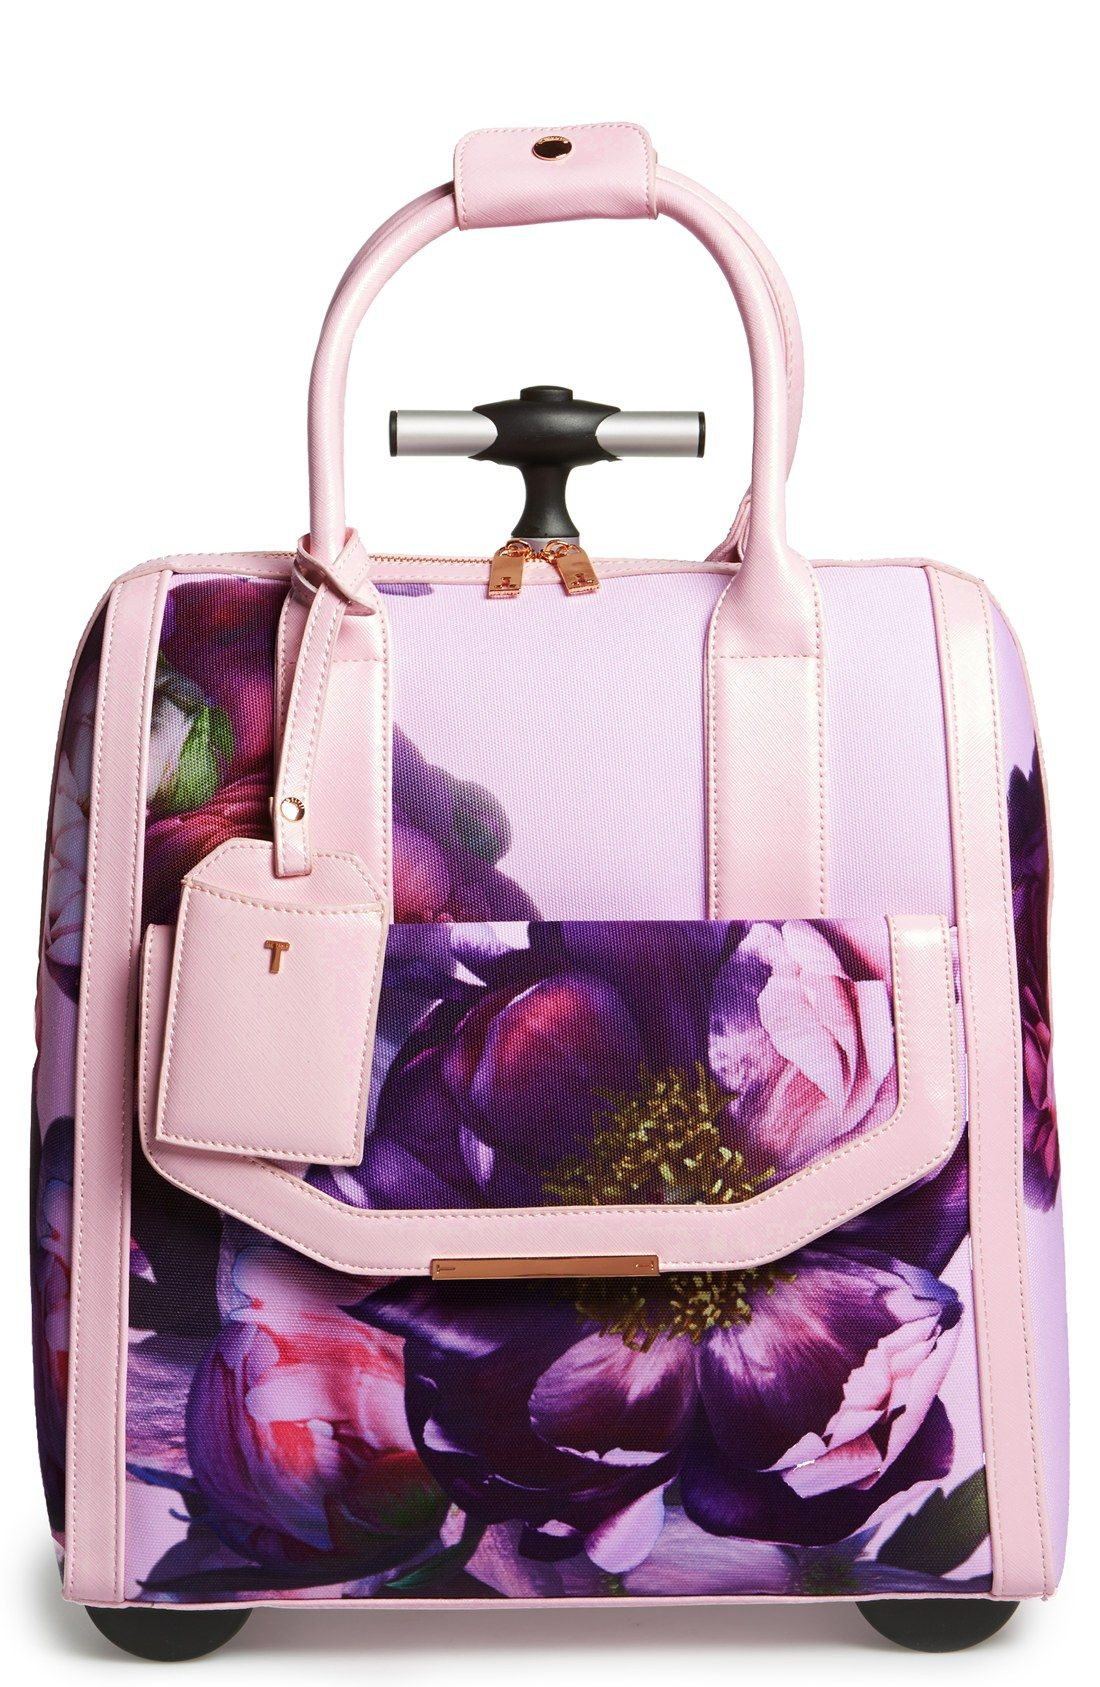 743fc6fcdc785 Can t wait to travel with this vibrant floral Ted Baker London carry ...